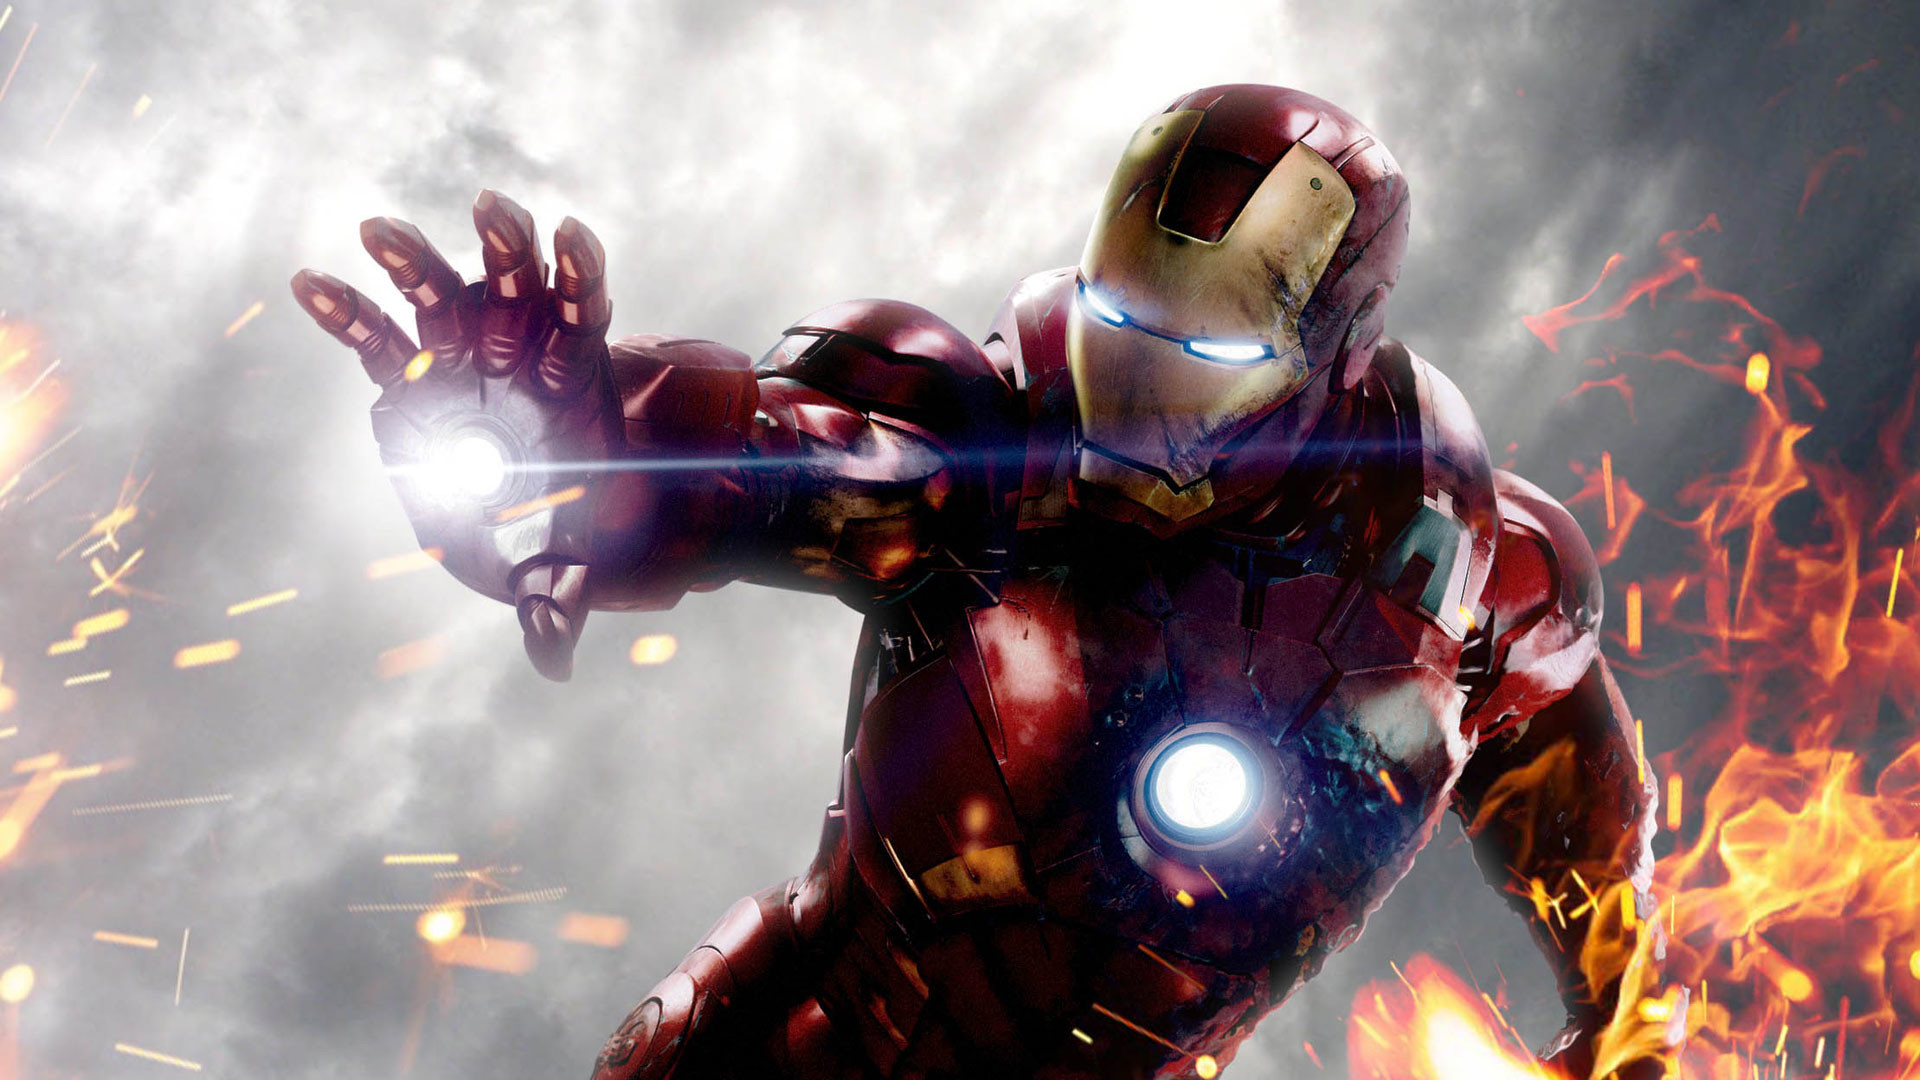 Iron Man Wallpaper 4k For Mobile Download ✓ The Galleries